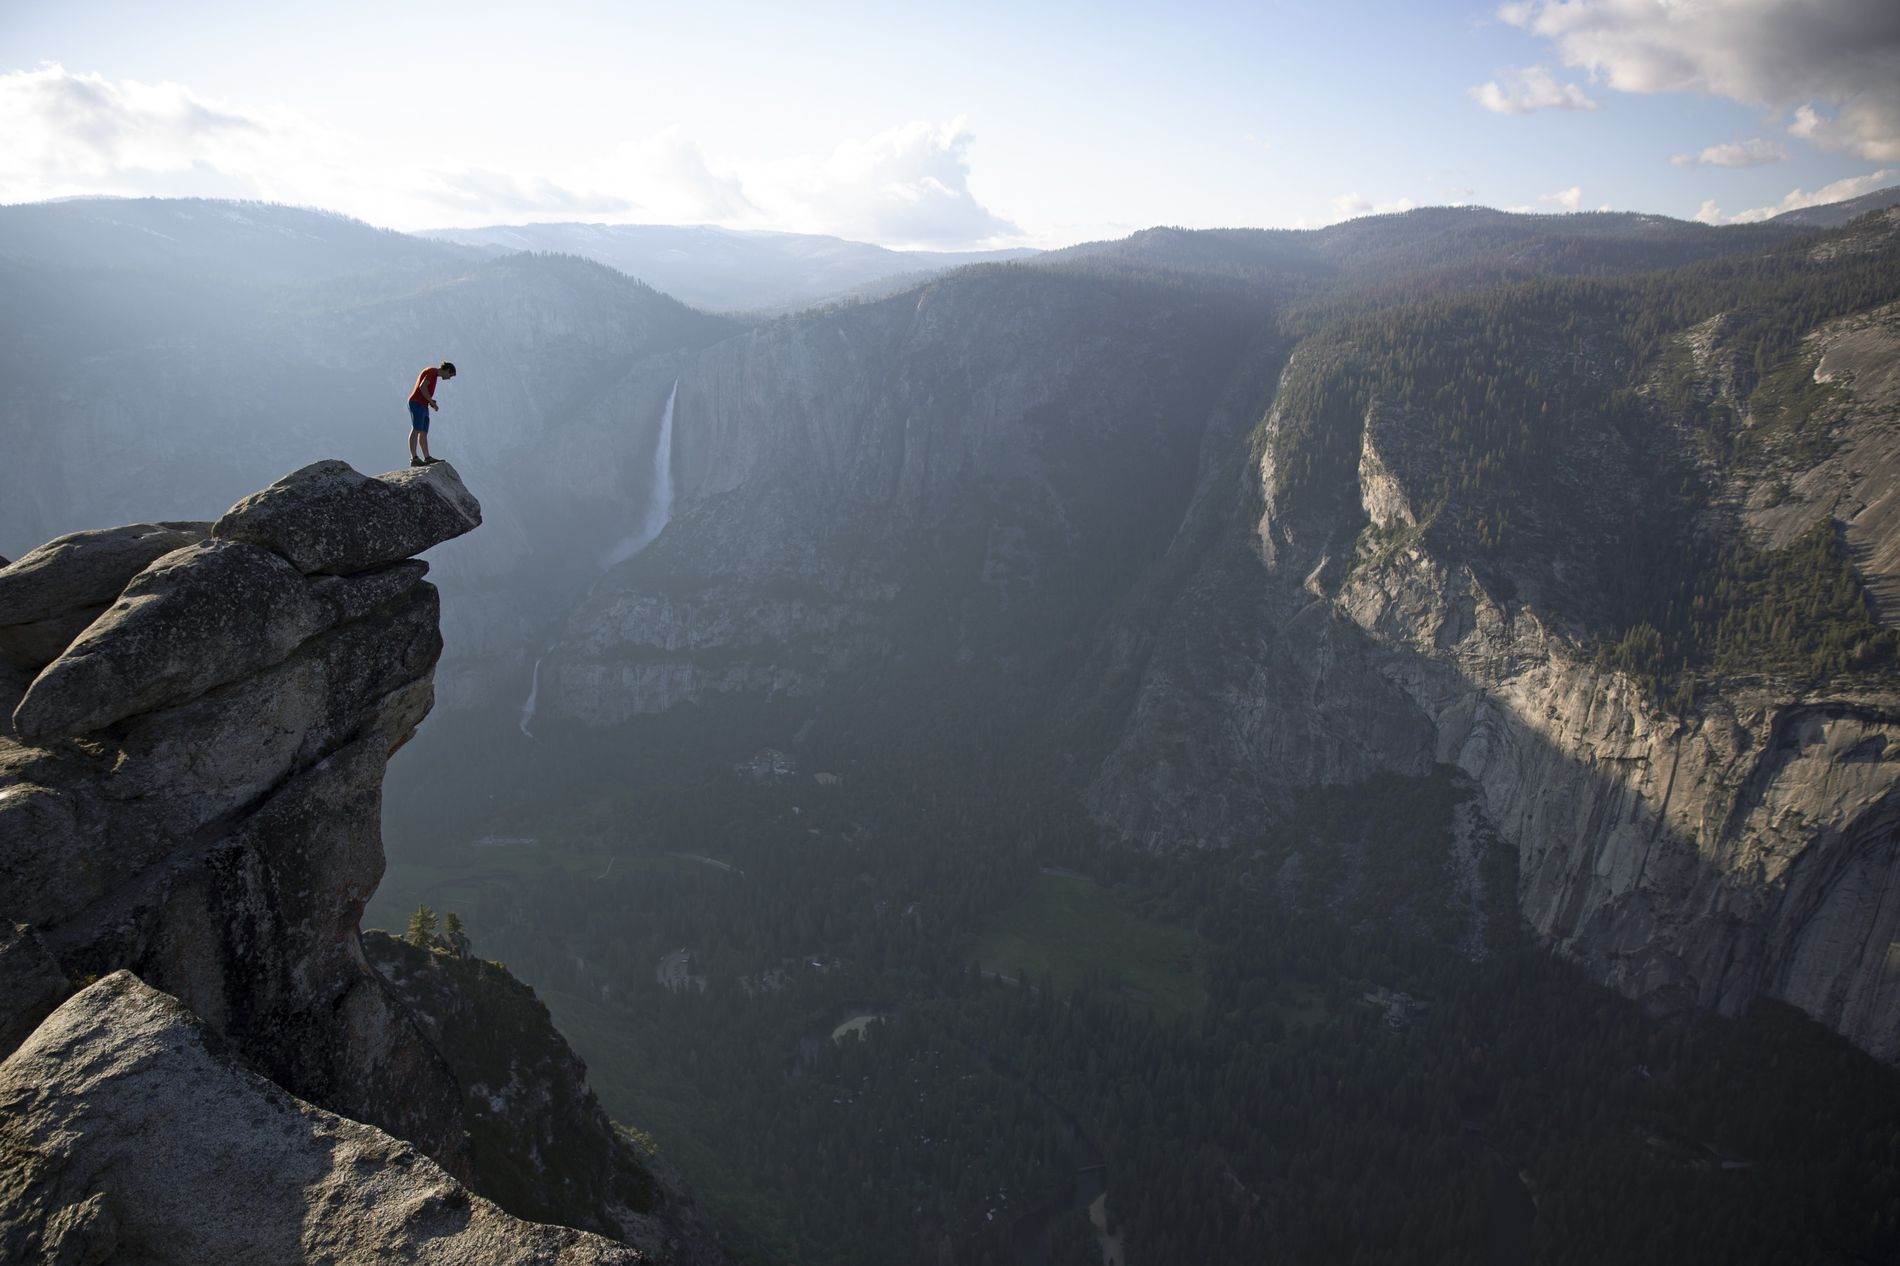 Don't look down... at least until you're at the top. Alex Honnold peers over the edge of Glacier Point in Yosemite National Park. He had just climbed 650 metres up from the valley floor.